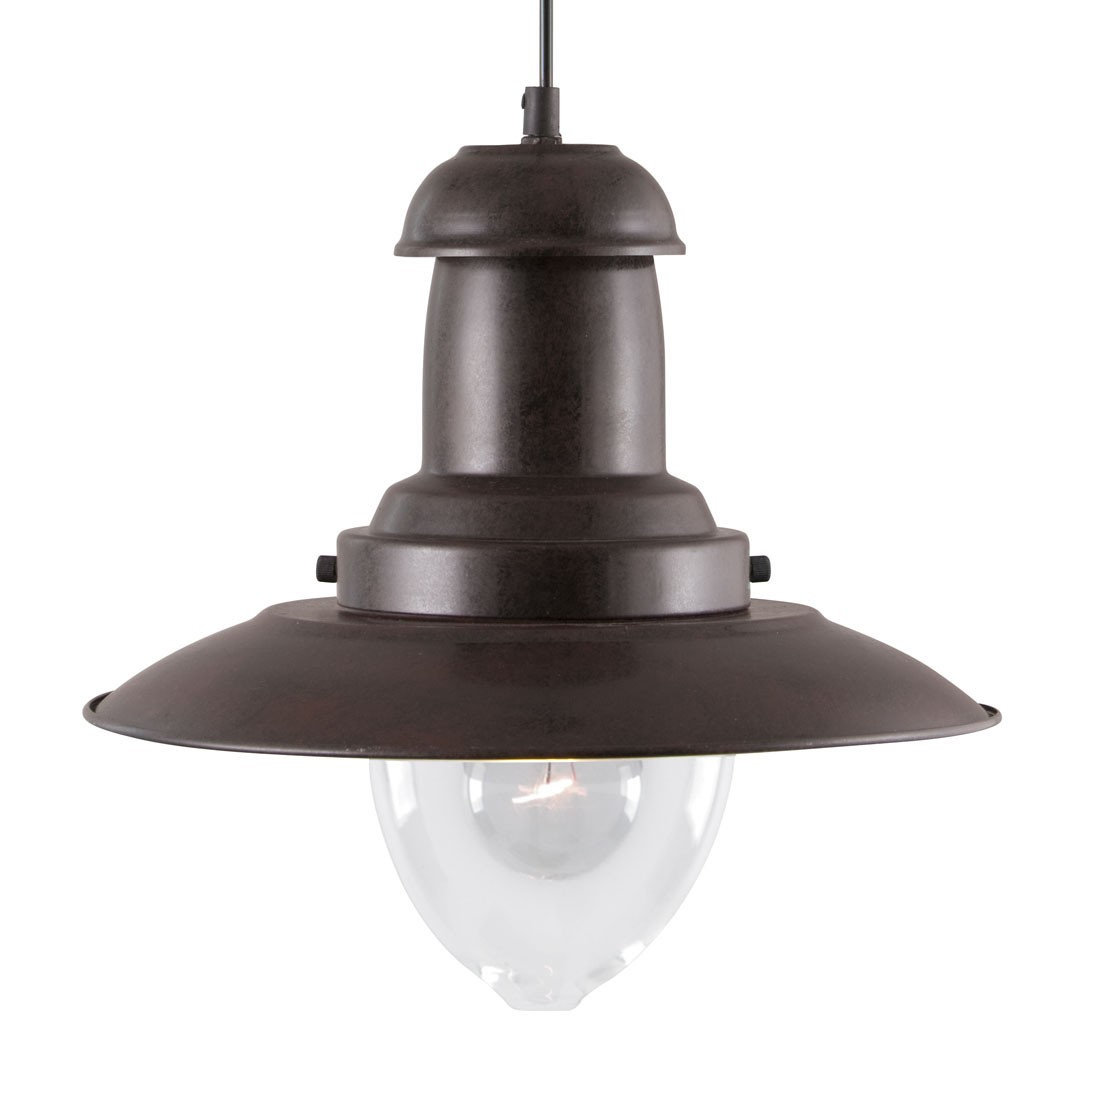 Fisherman rustic brown ceiling light with clear glass - Clear glass ceiling light ...